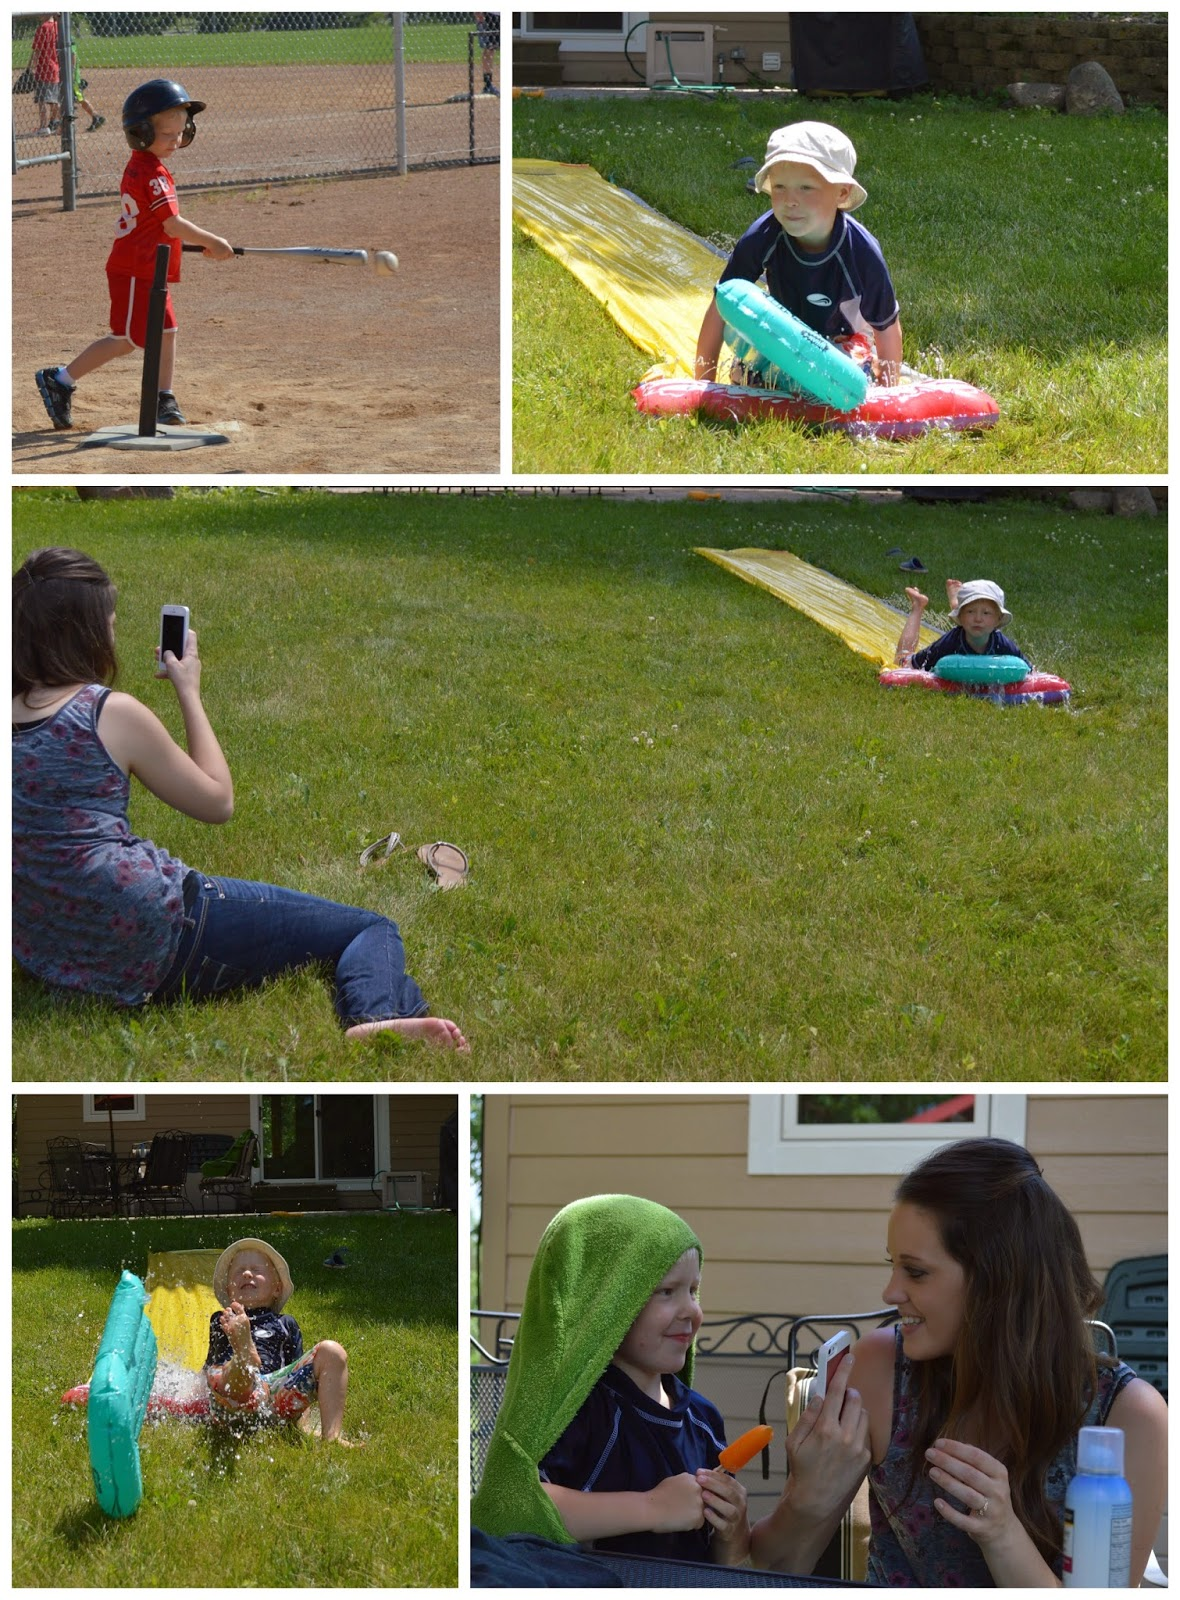 tball and outside summer fun